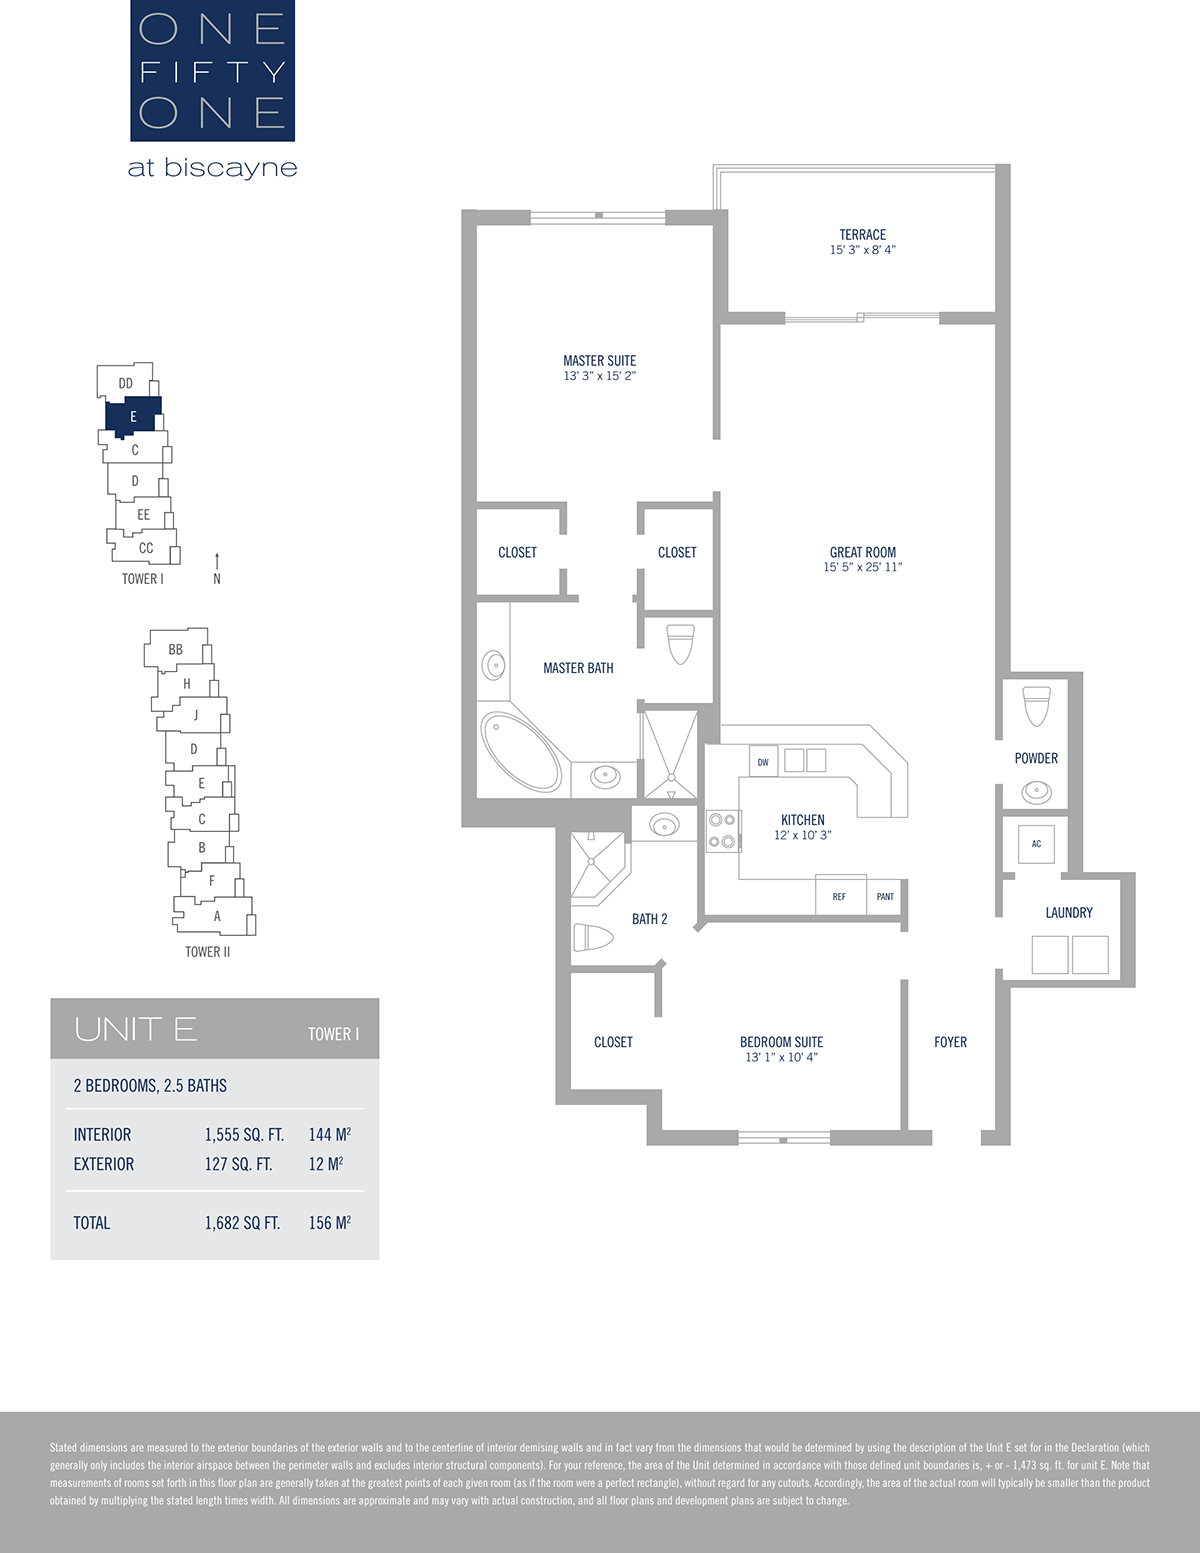 One Fifty One At Biscayne - Floorplan 17